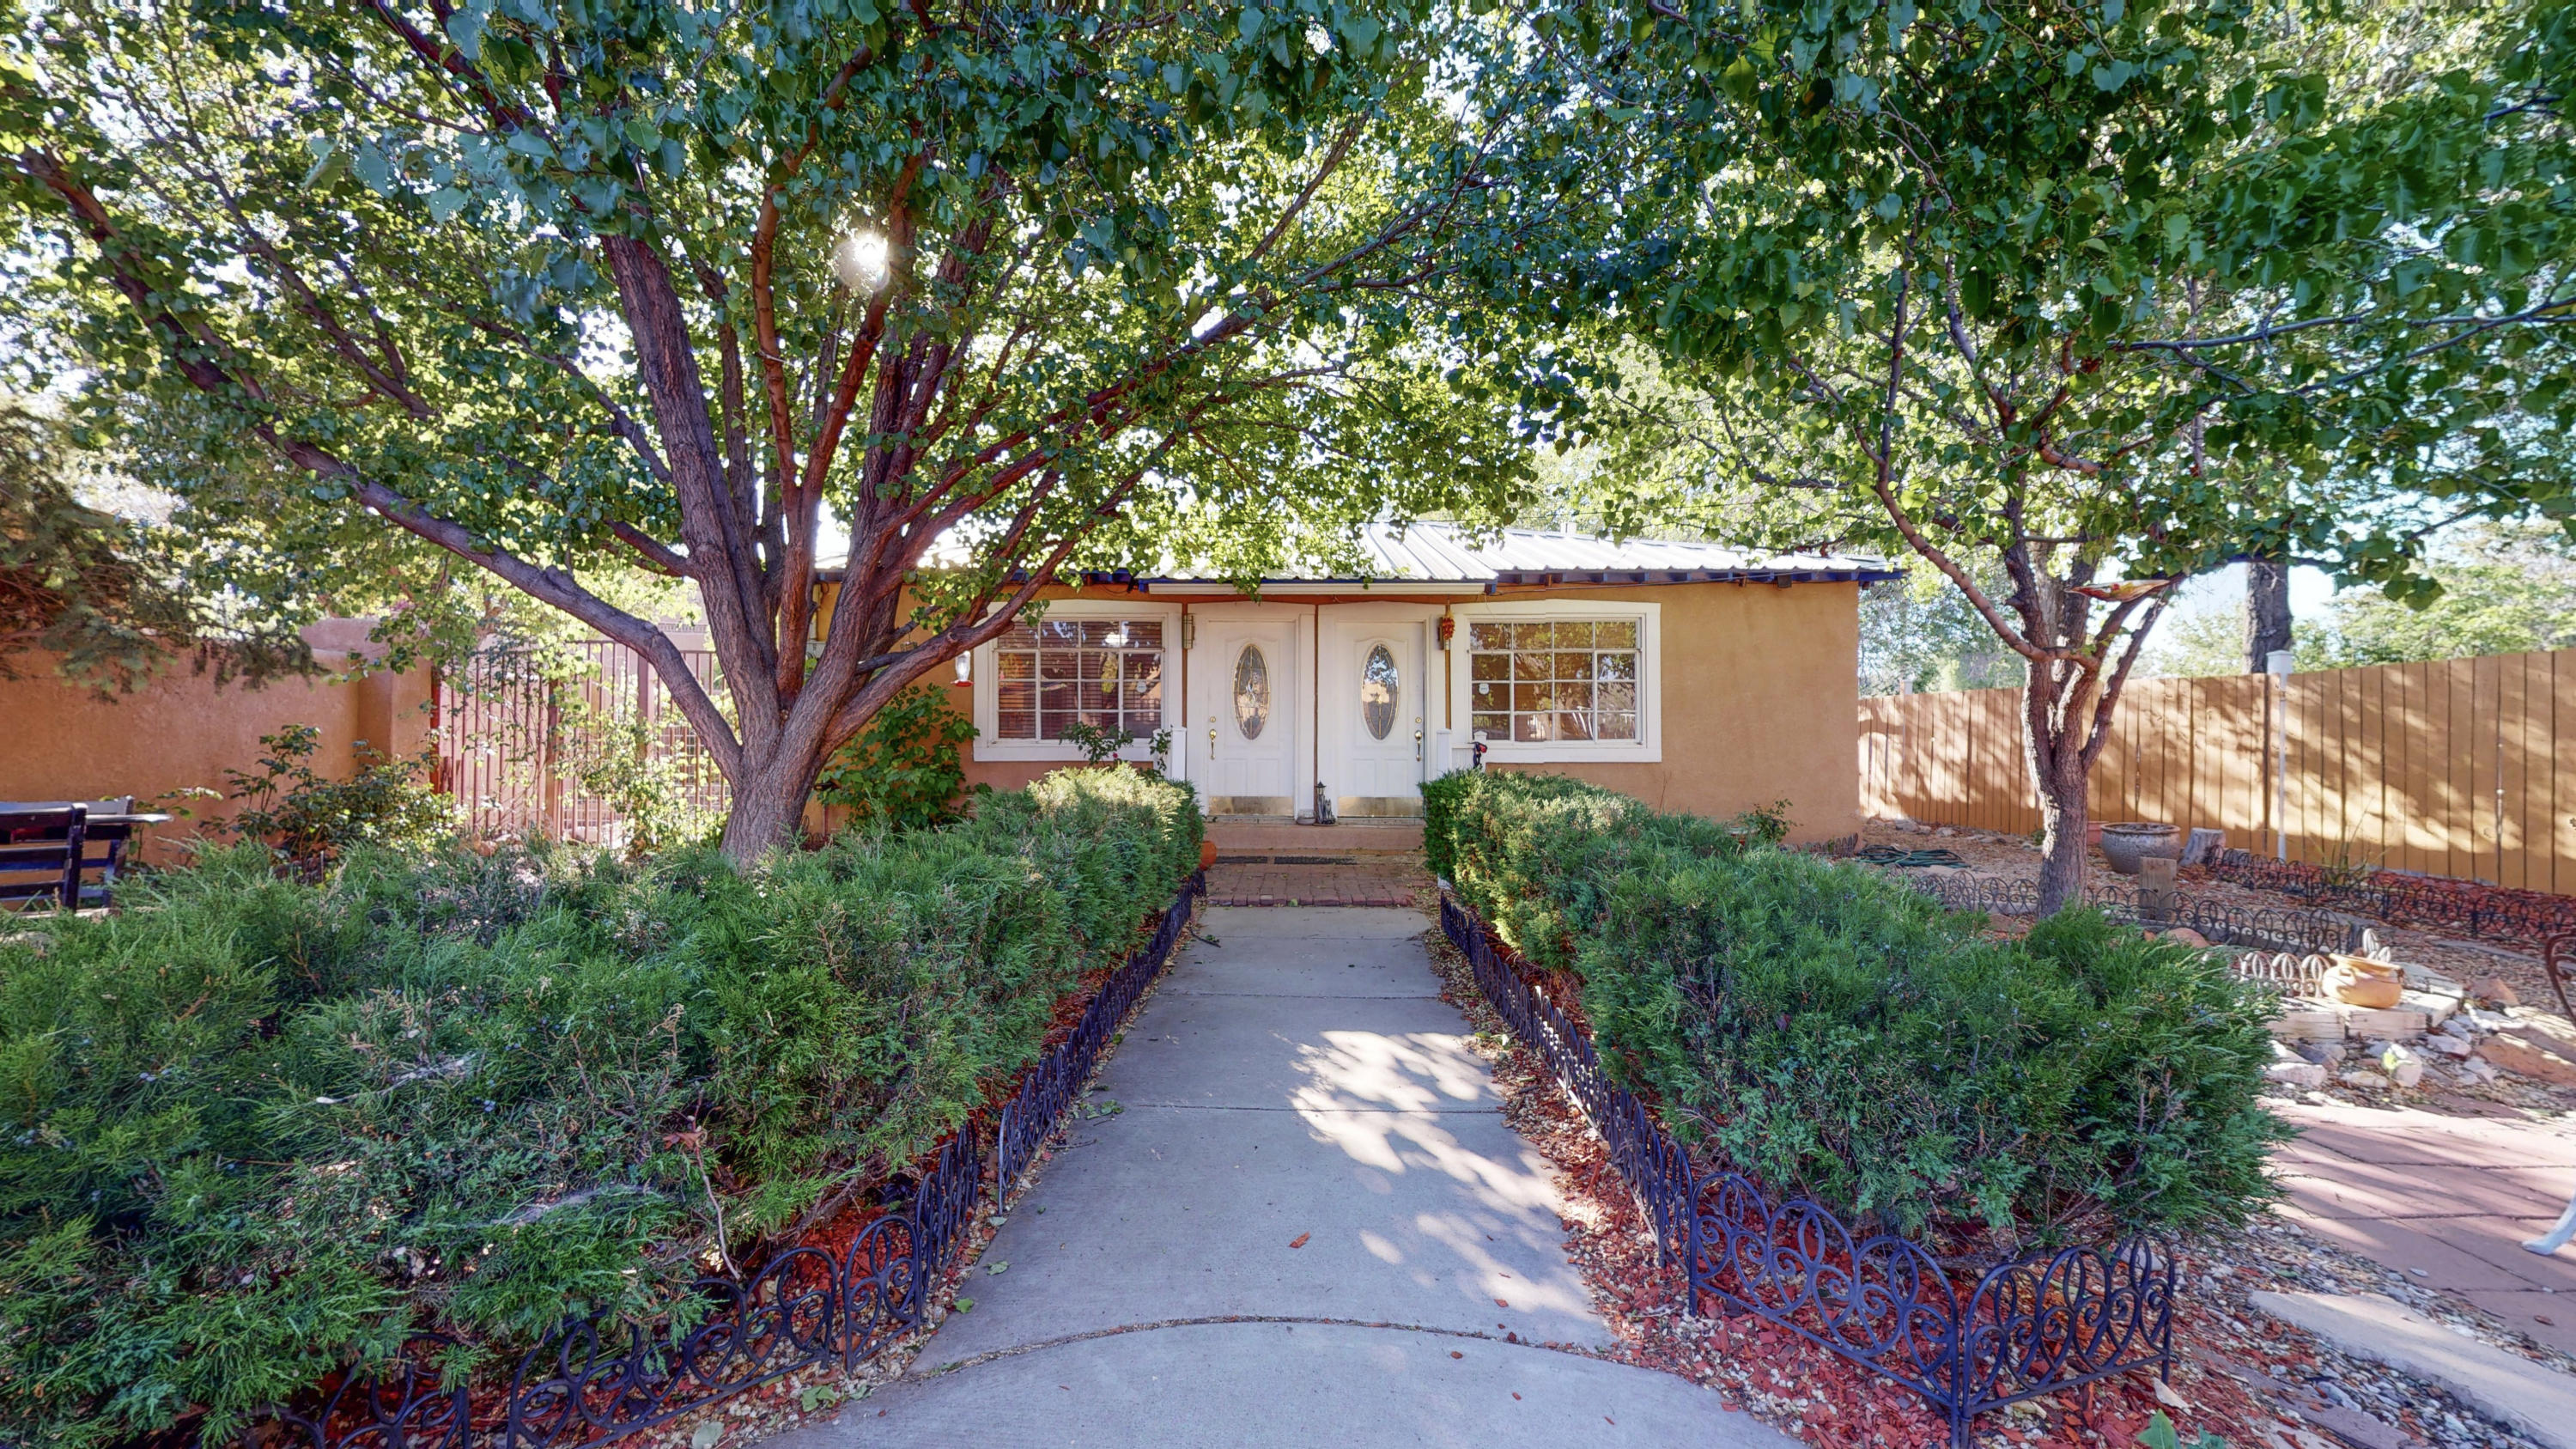 Beautiful North Valley property!  Just off Rio Grande near Old town and the Nature Center with easy access to the bosque trails and just north of I-40.  Gated and fully fenced with  mature  landscape off a private, fairly hidden driveway.   This duplex would be a great opportunity for rental income or an office for an attorney or CPA.   Up to 6 private parking spaces with community parking available. Rare Zoning!Zoned C-1 & Multi-family Res U4UCurrent rental income is $1295 per unit.